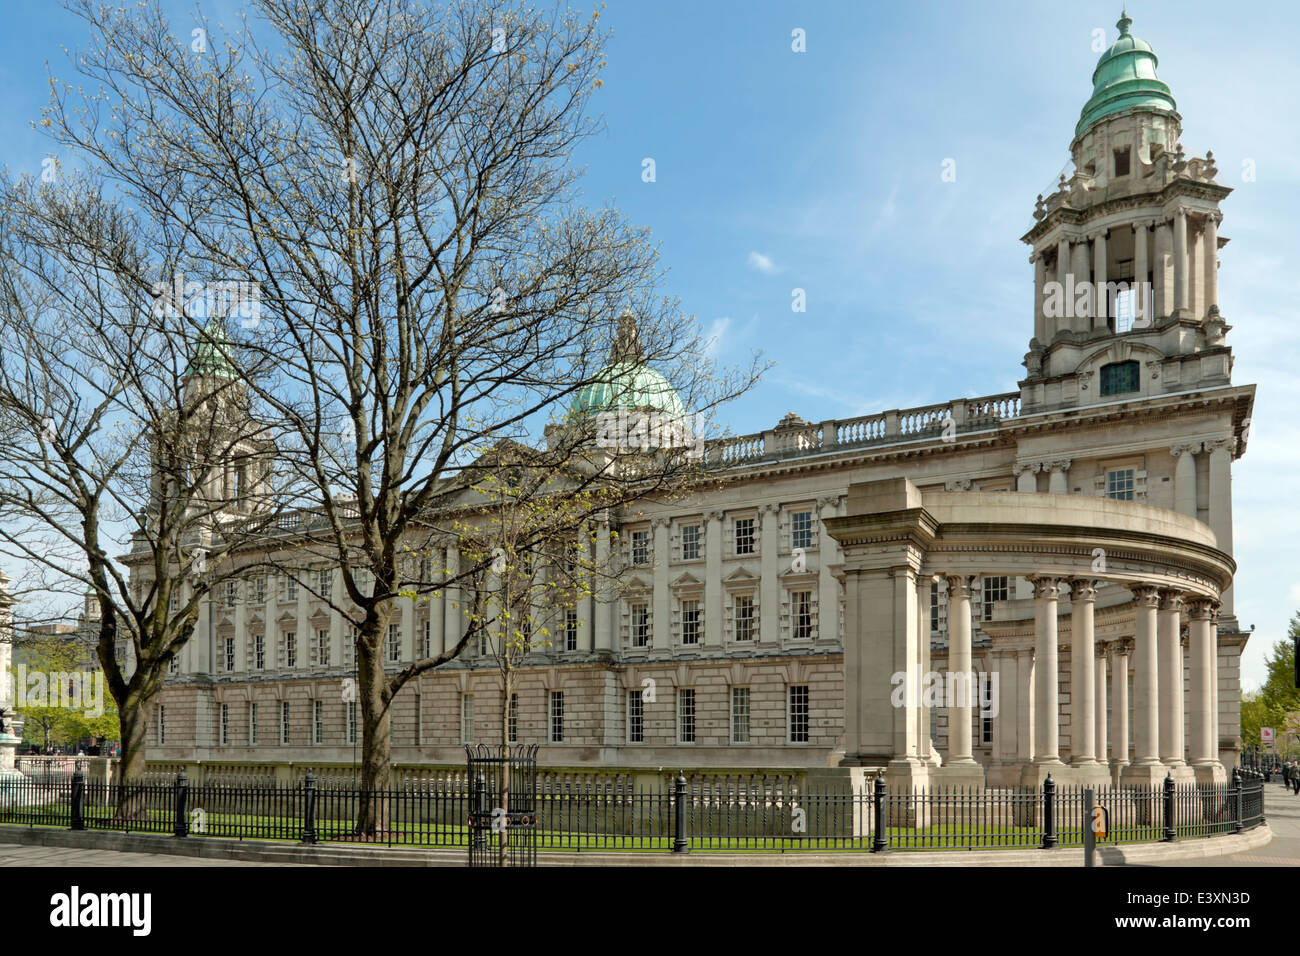 Belfast City Hall, the civic building of the Belfast City Council, Donegall Square, Belfast, County Antrim, Northern - Stock Image